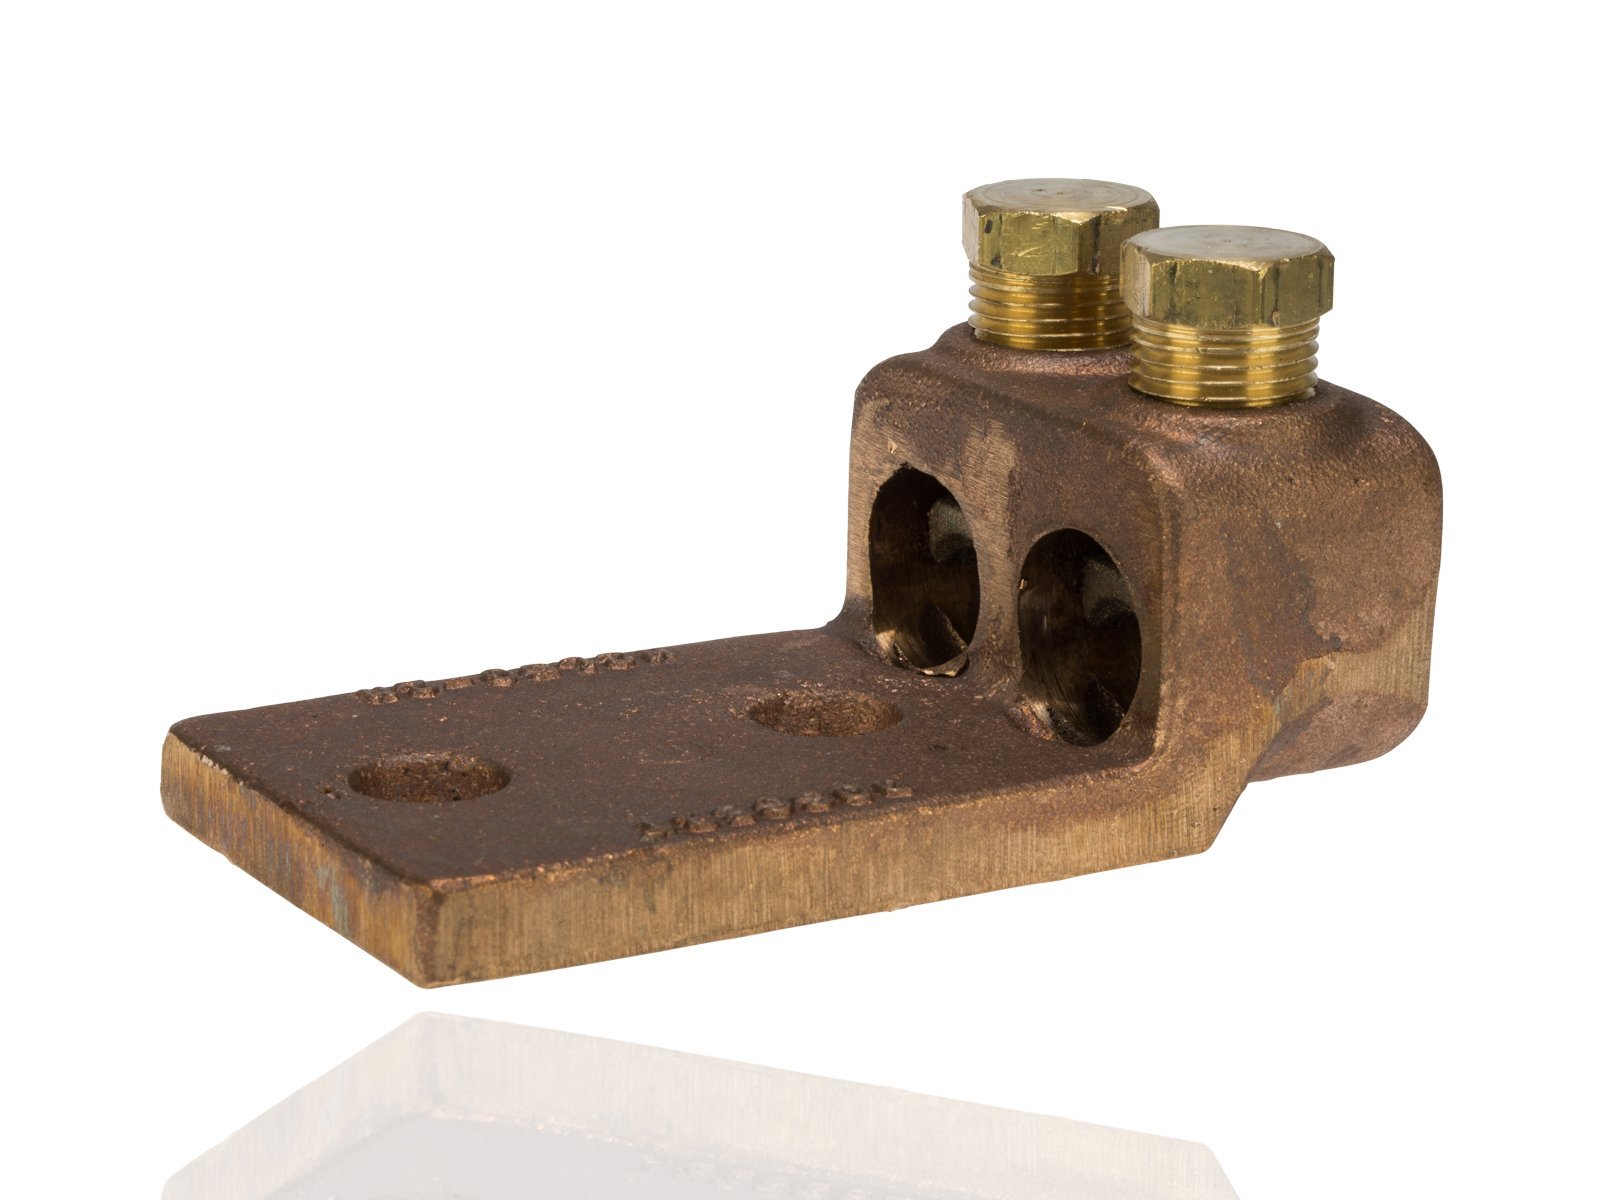 Split Bolt, Post and Tap Connector, Type TL Copper and Cast Bronze Terminal Lug, 300 MCM - 500 MCM Wire Range, 1/2'' Bolt Hole Size, 2 Holes, 800 Amp Nec, 2.500'' Width, 1.5'' Height, 4.5'' Length by NSi Industries, LLC